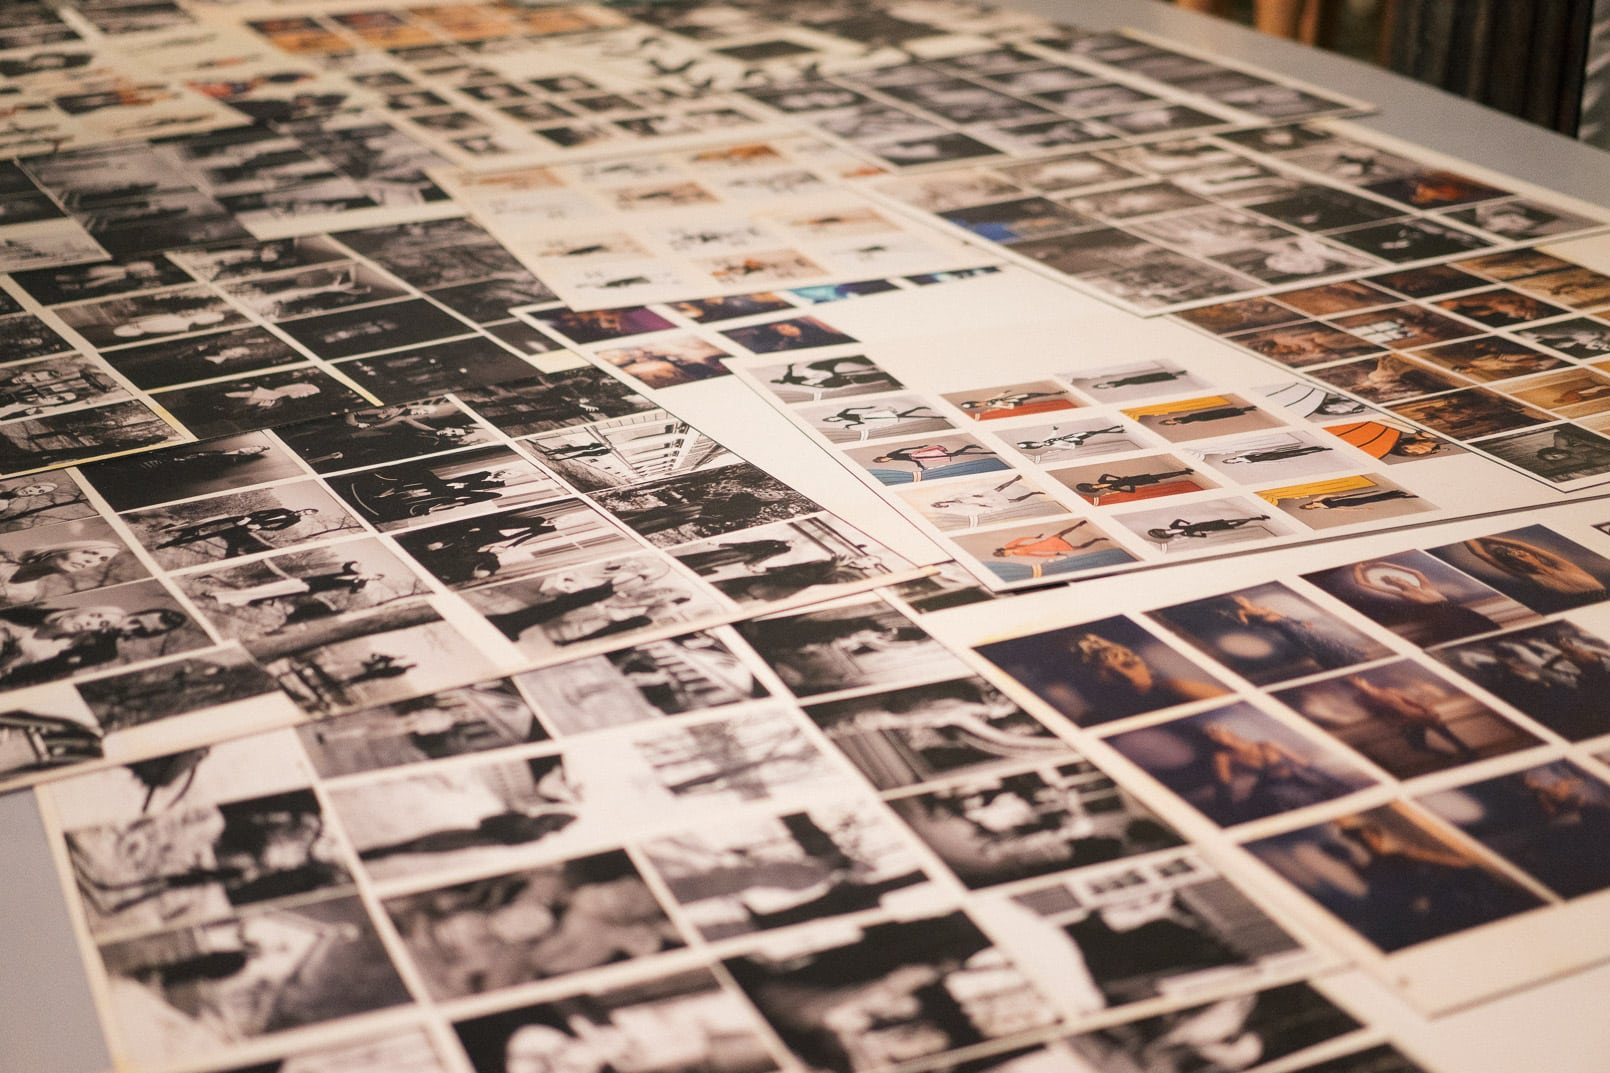 Karl Lagerfeld's photographs 'Obra en Proceso - Work in Progress' at the Factoría Habana